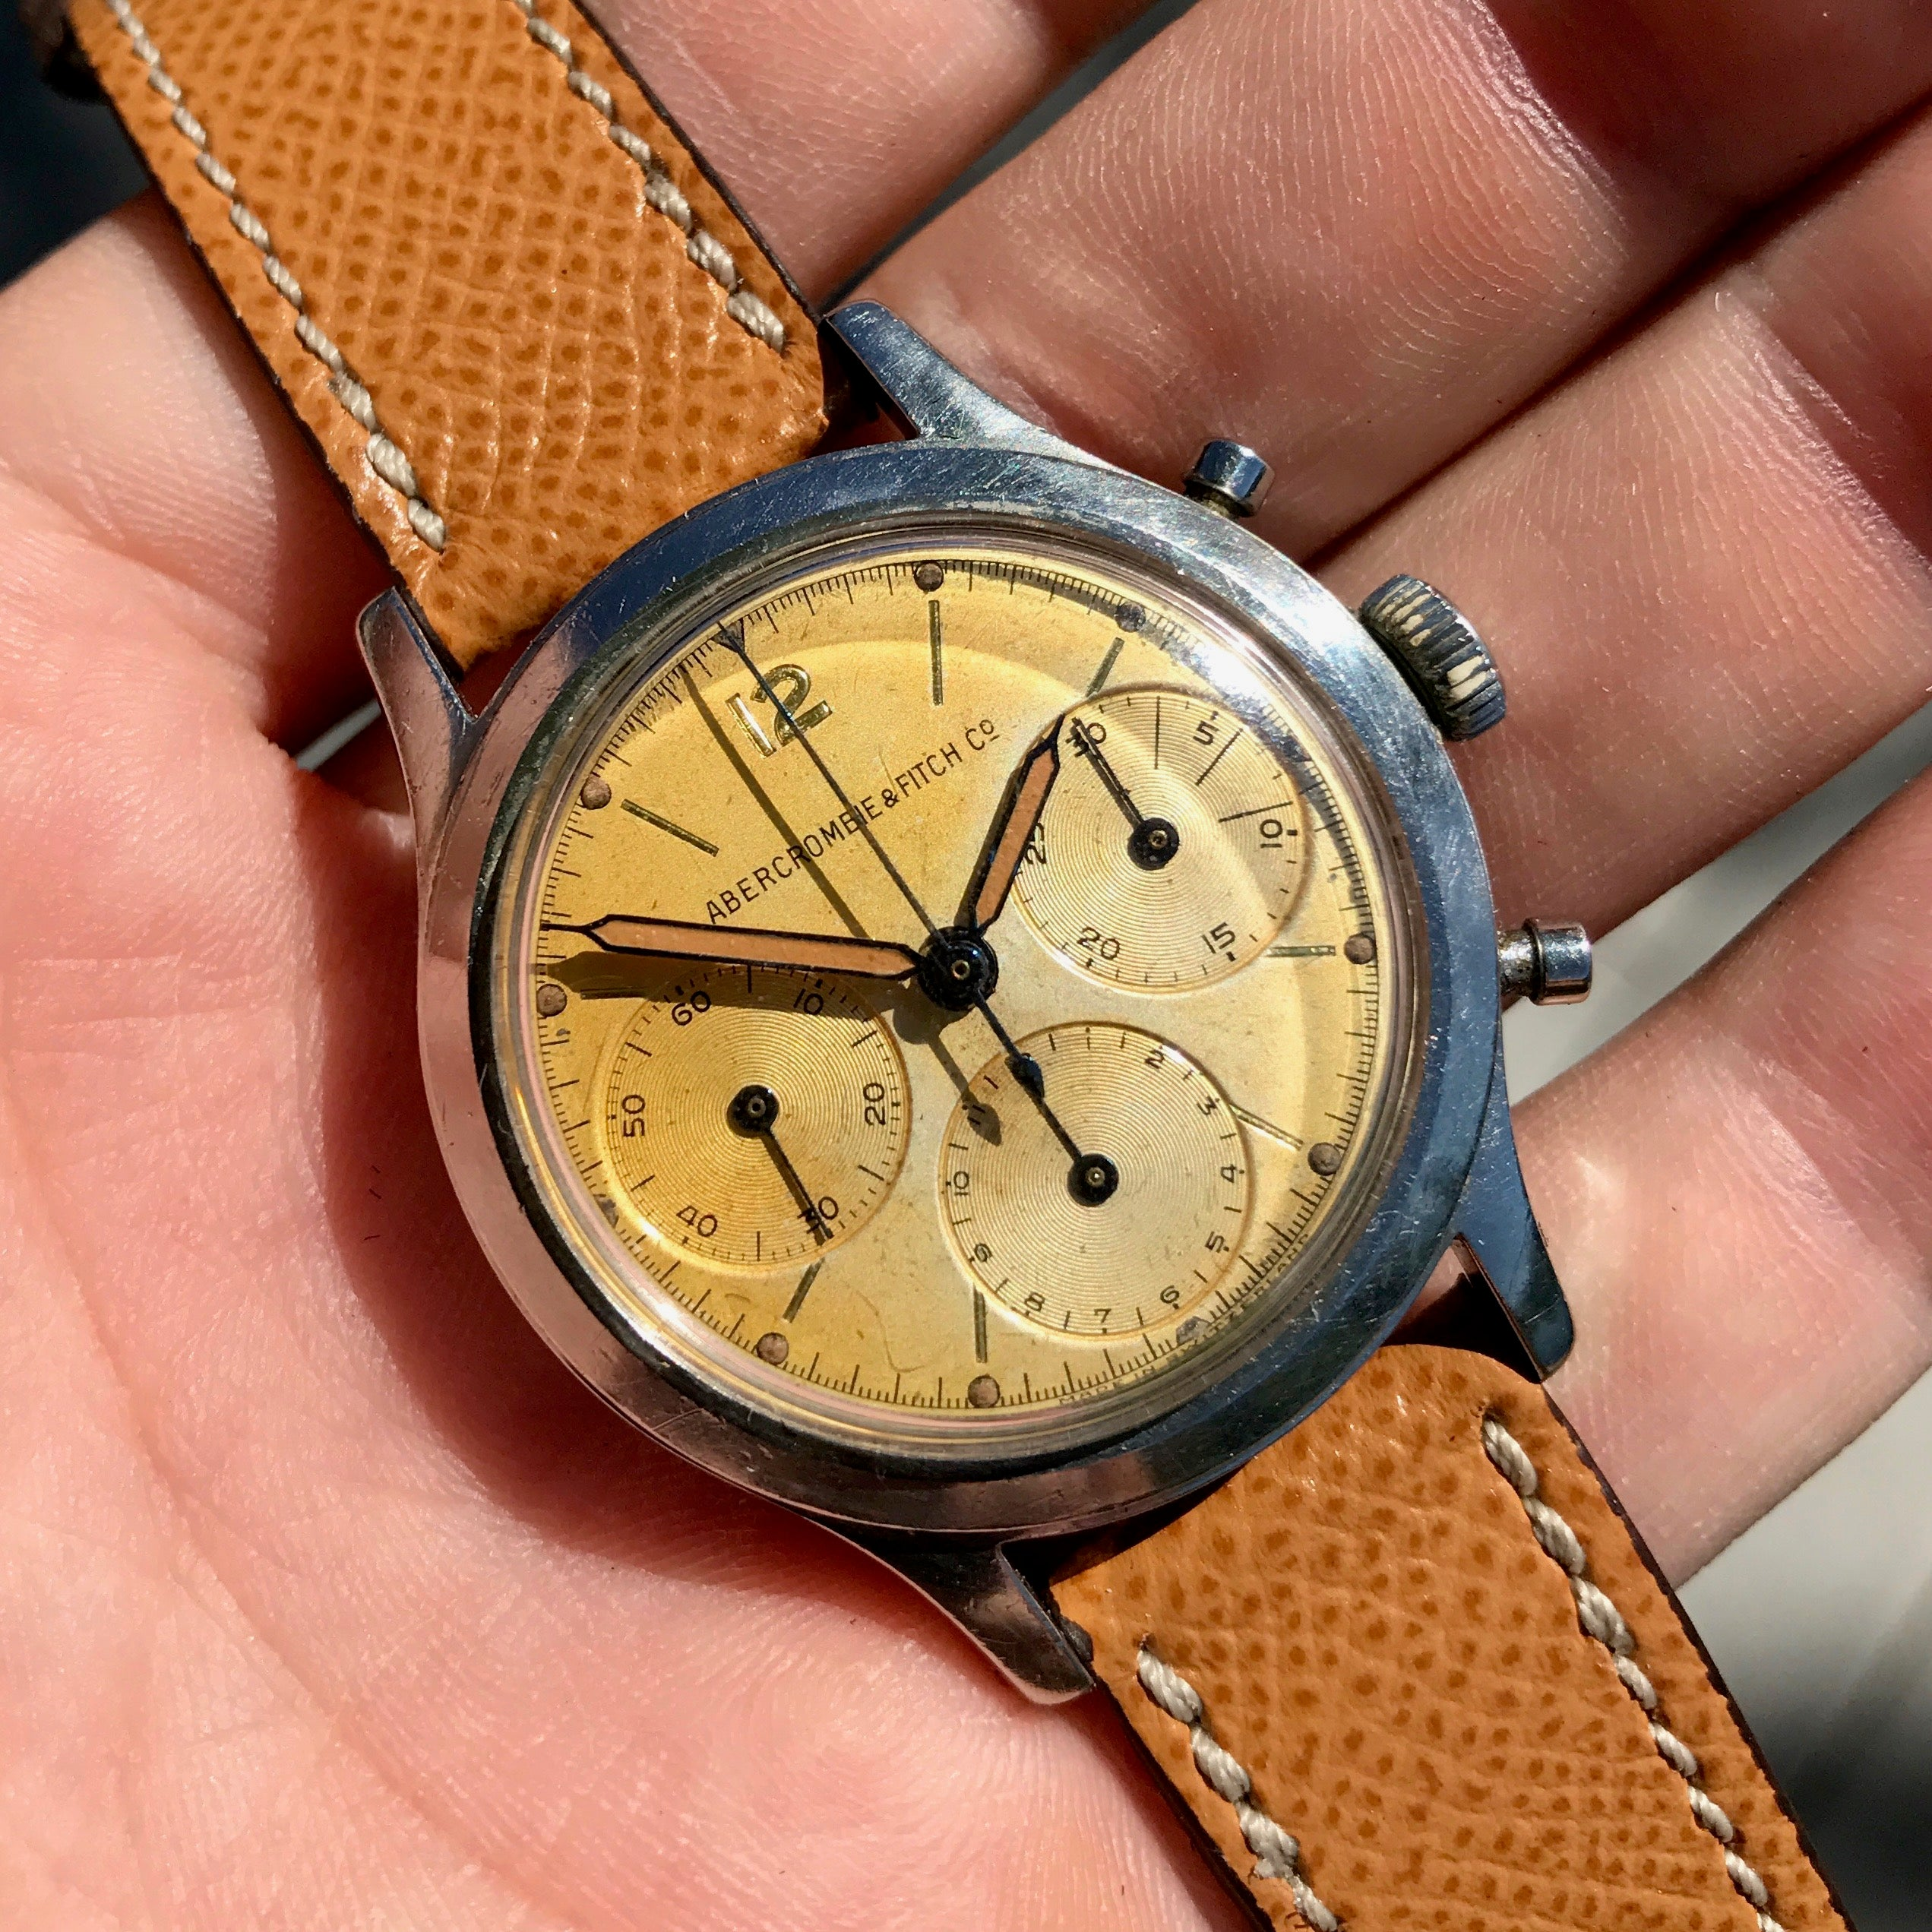 Vintage Abercrombie & Fitch Co. 2444 (Heuer) Chronograph Valjoux 72 Manual Steel Wristwatch - Hashtag Watch Company